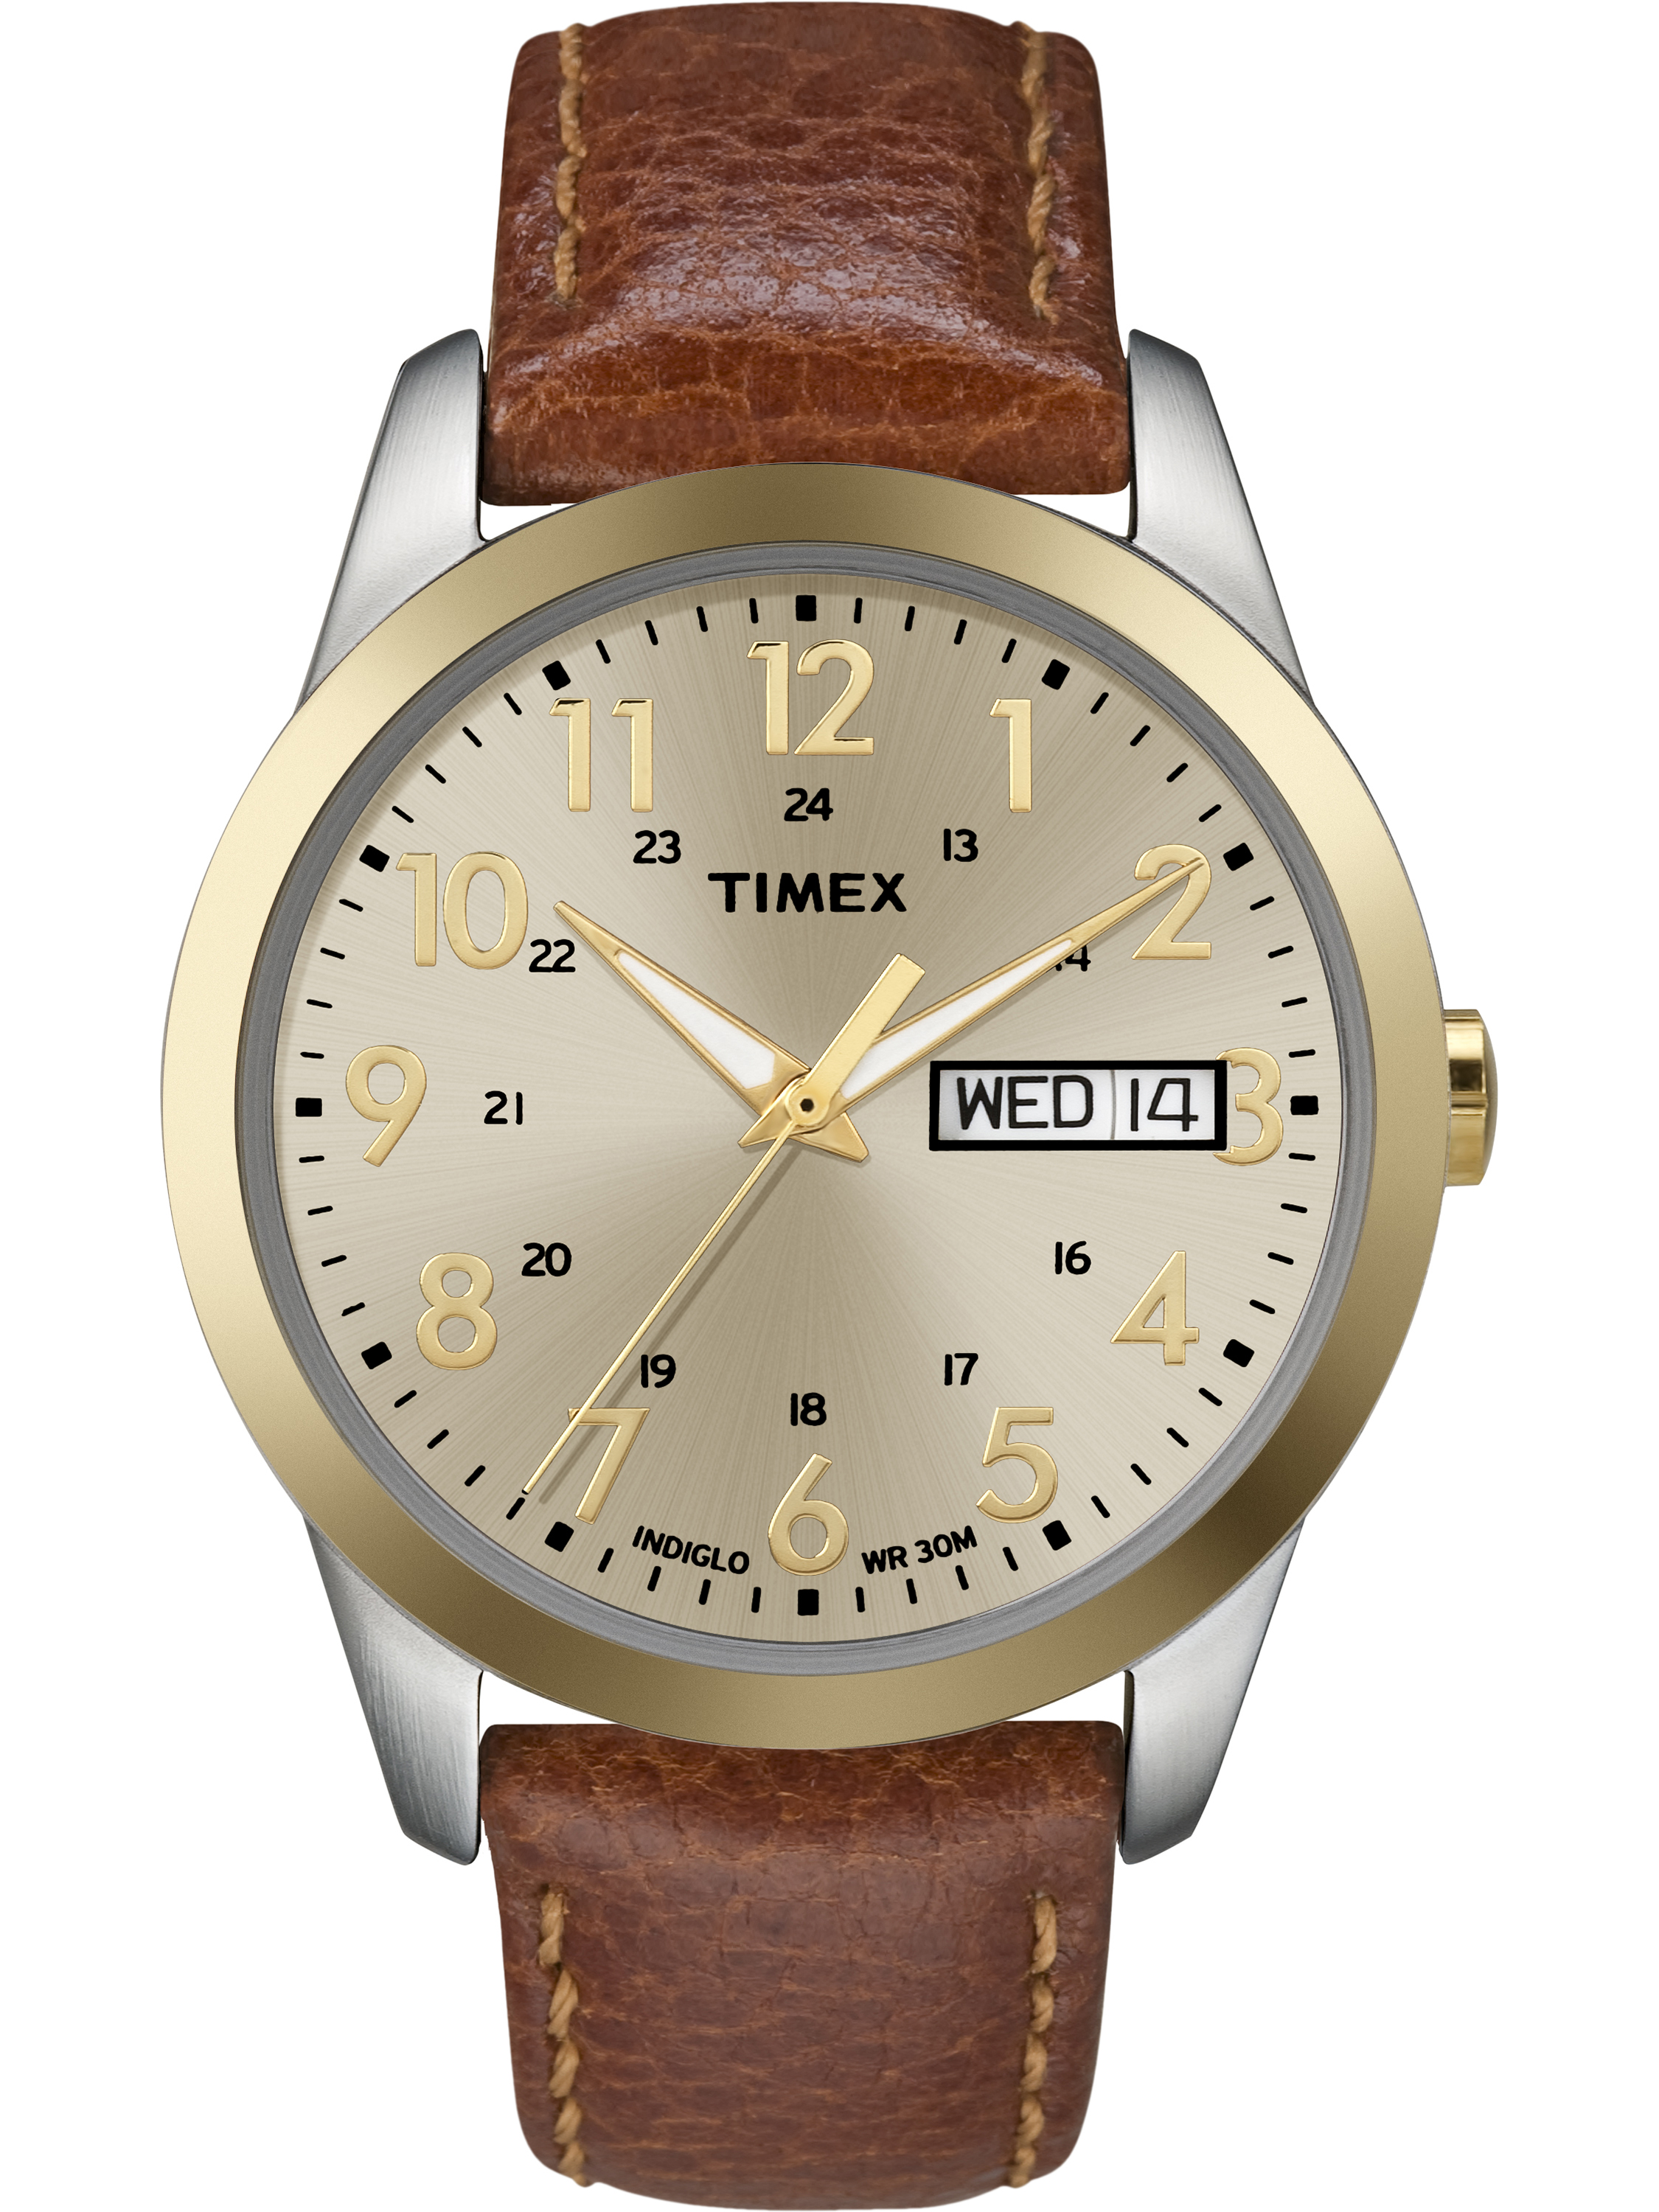 Timex Men's South Street Sport Watch, Brown Leather Strap by Timex